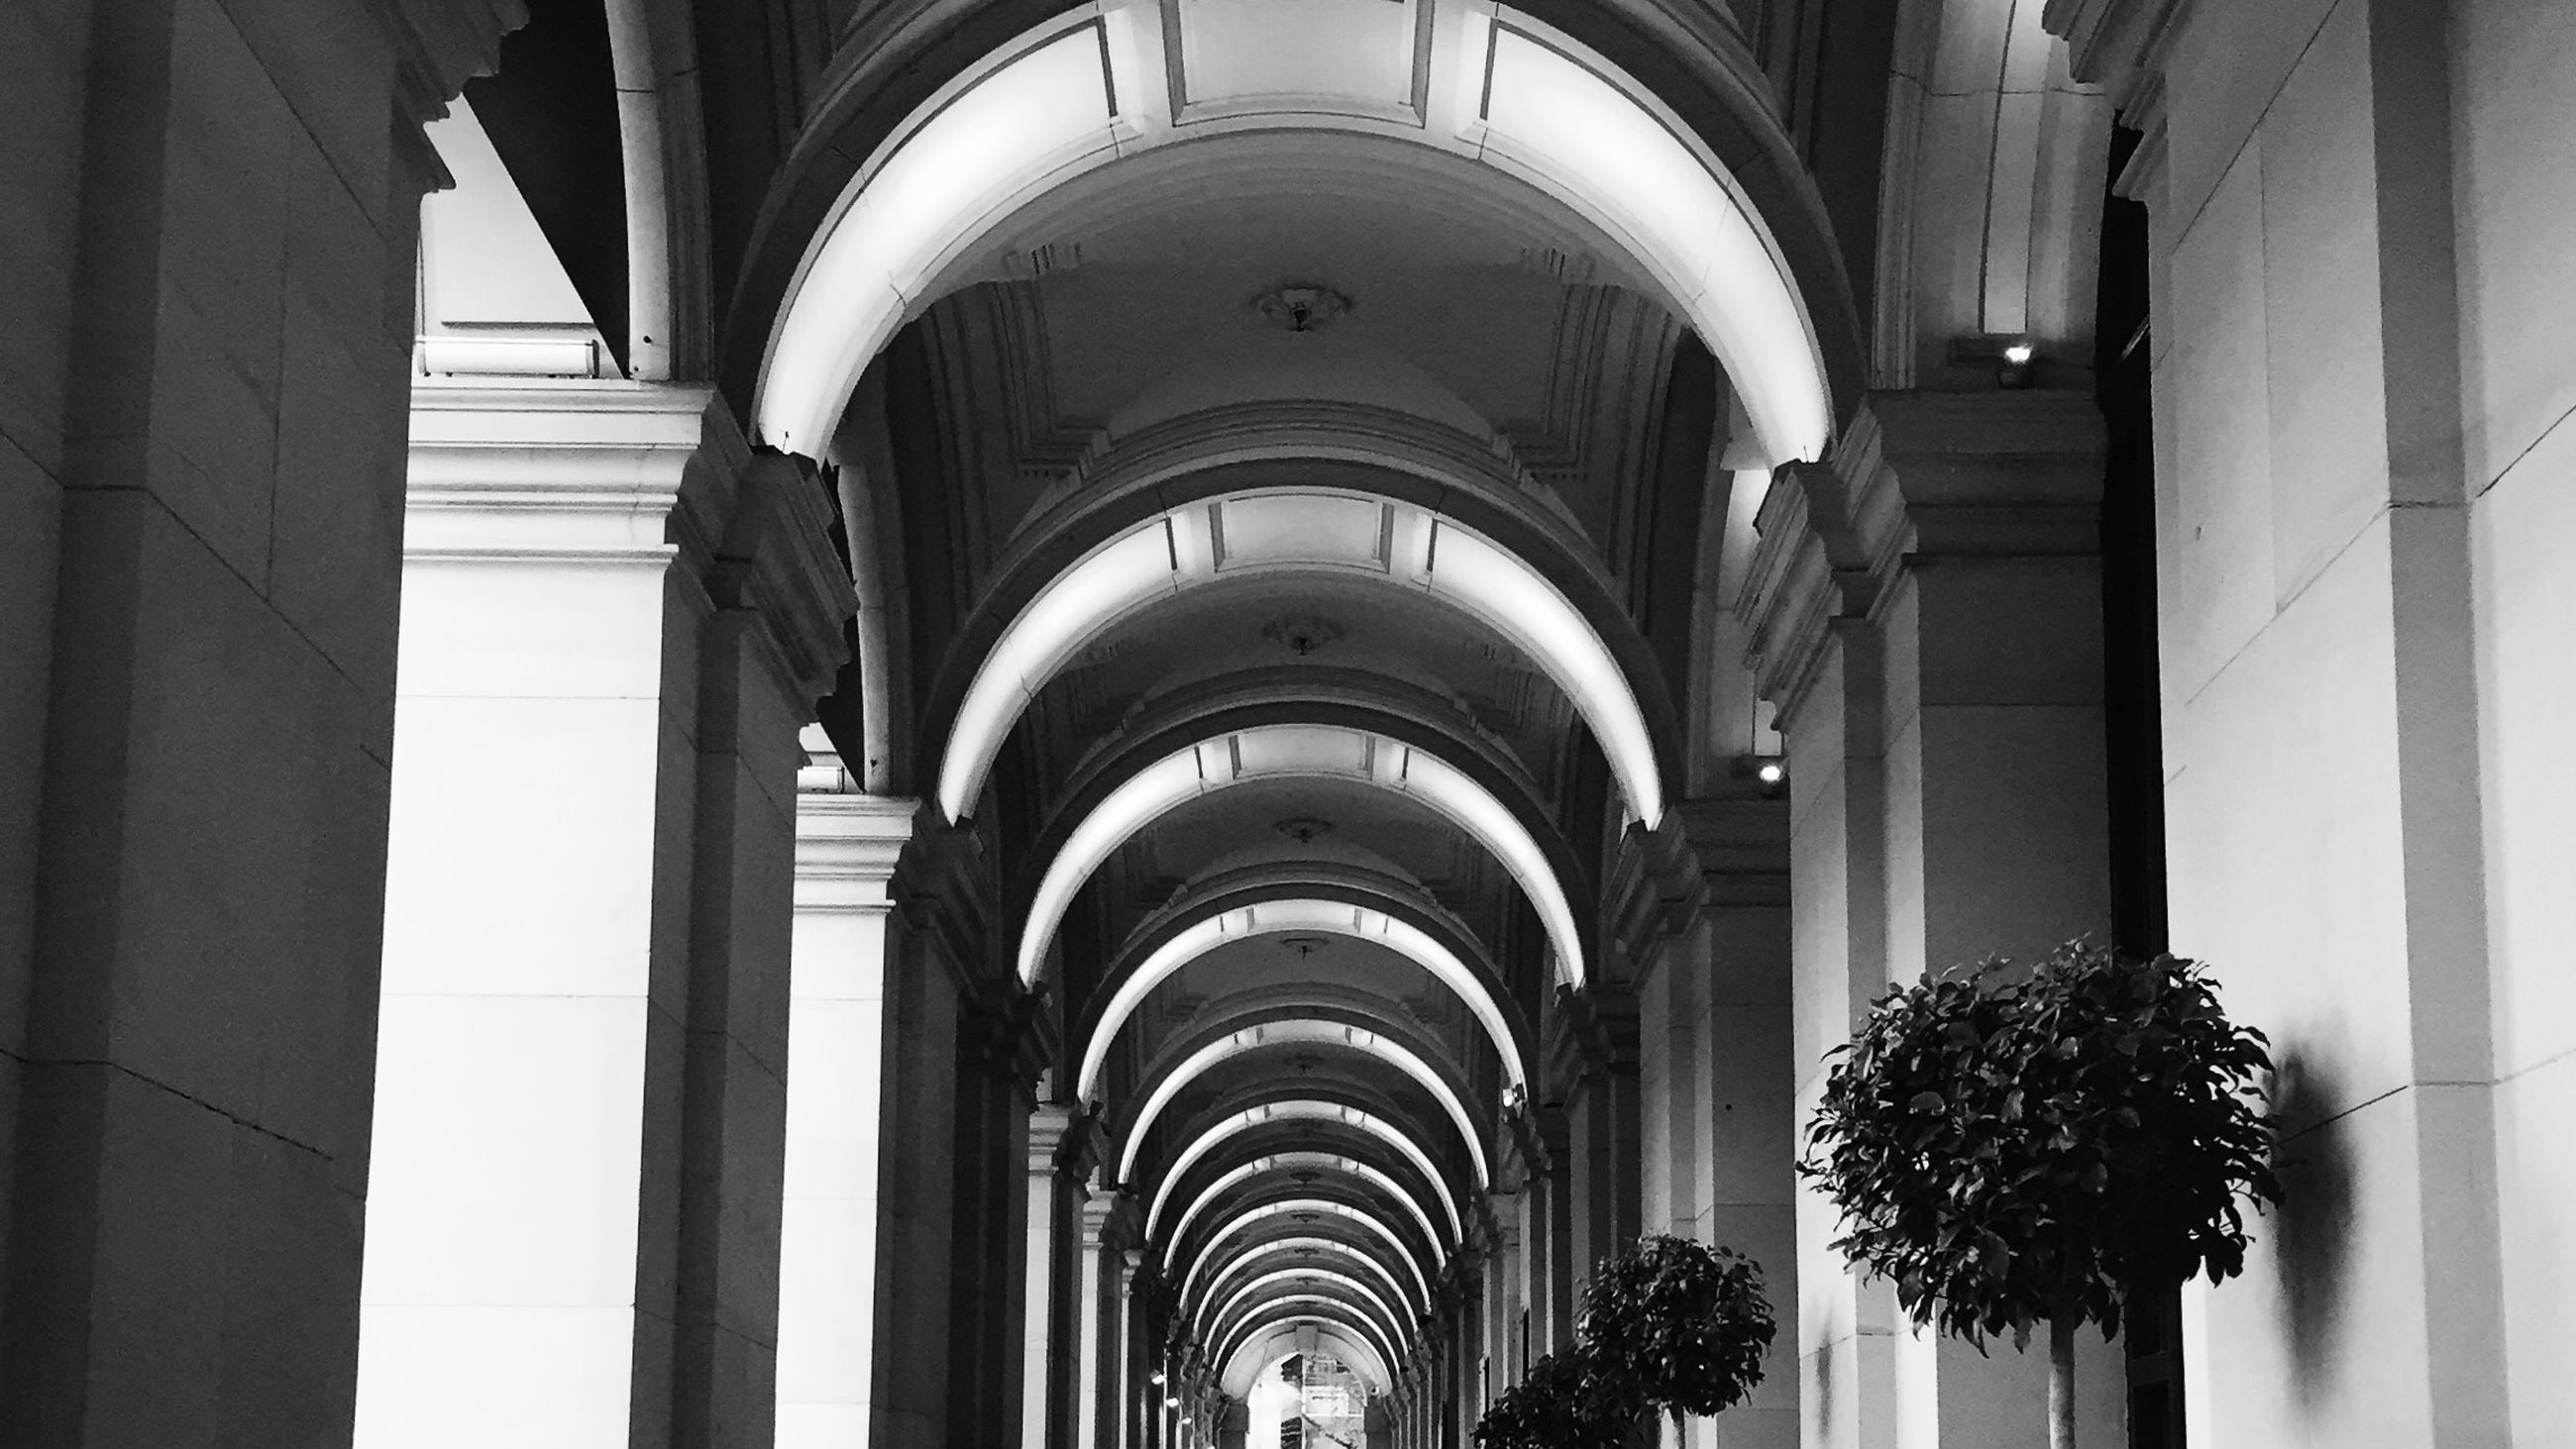 indoors, arch, architecture, built structure, architectural column, ceiling, place of worship, religion, corridor, church, column, spirituality, ornate, history, low angle view, in a row, architectural feature, interior, colonnade